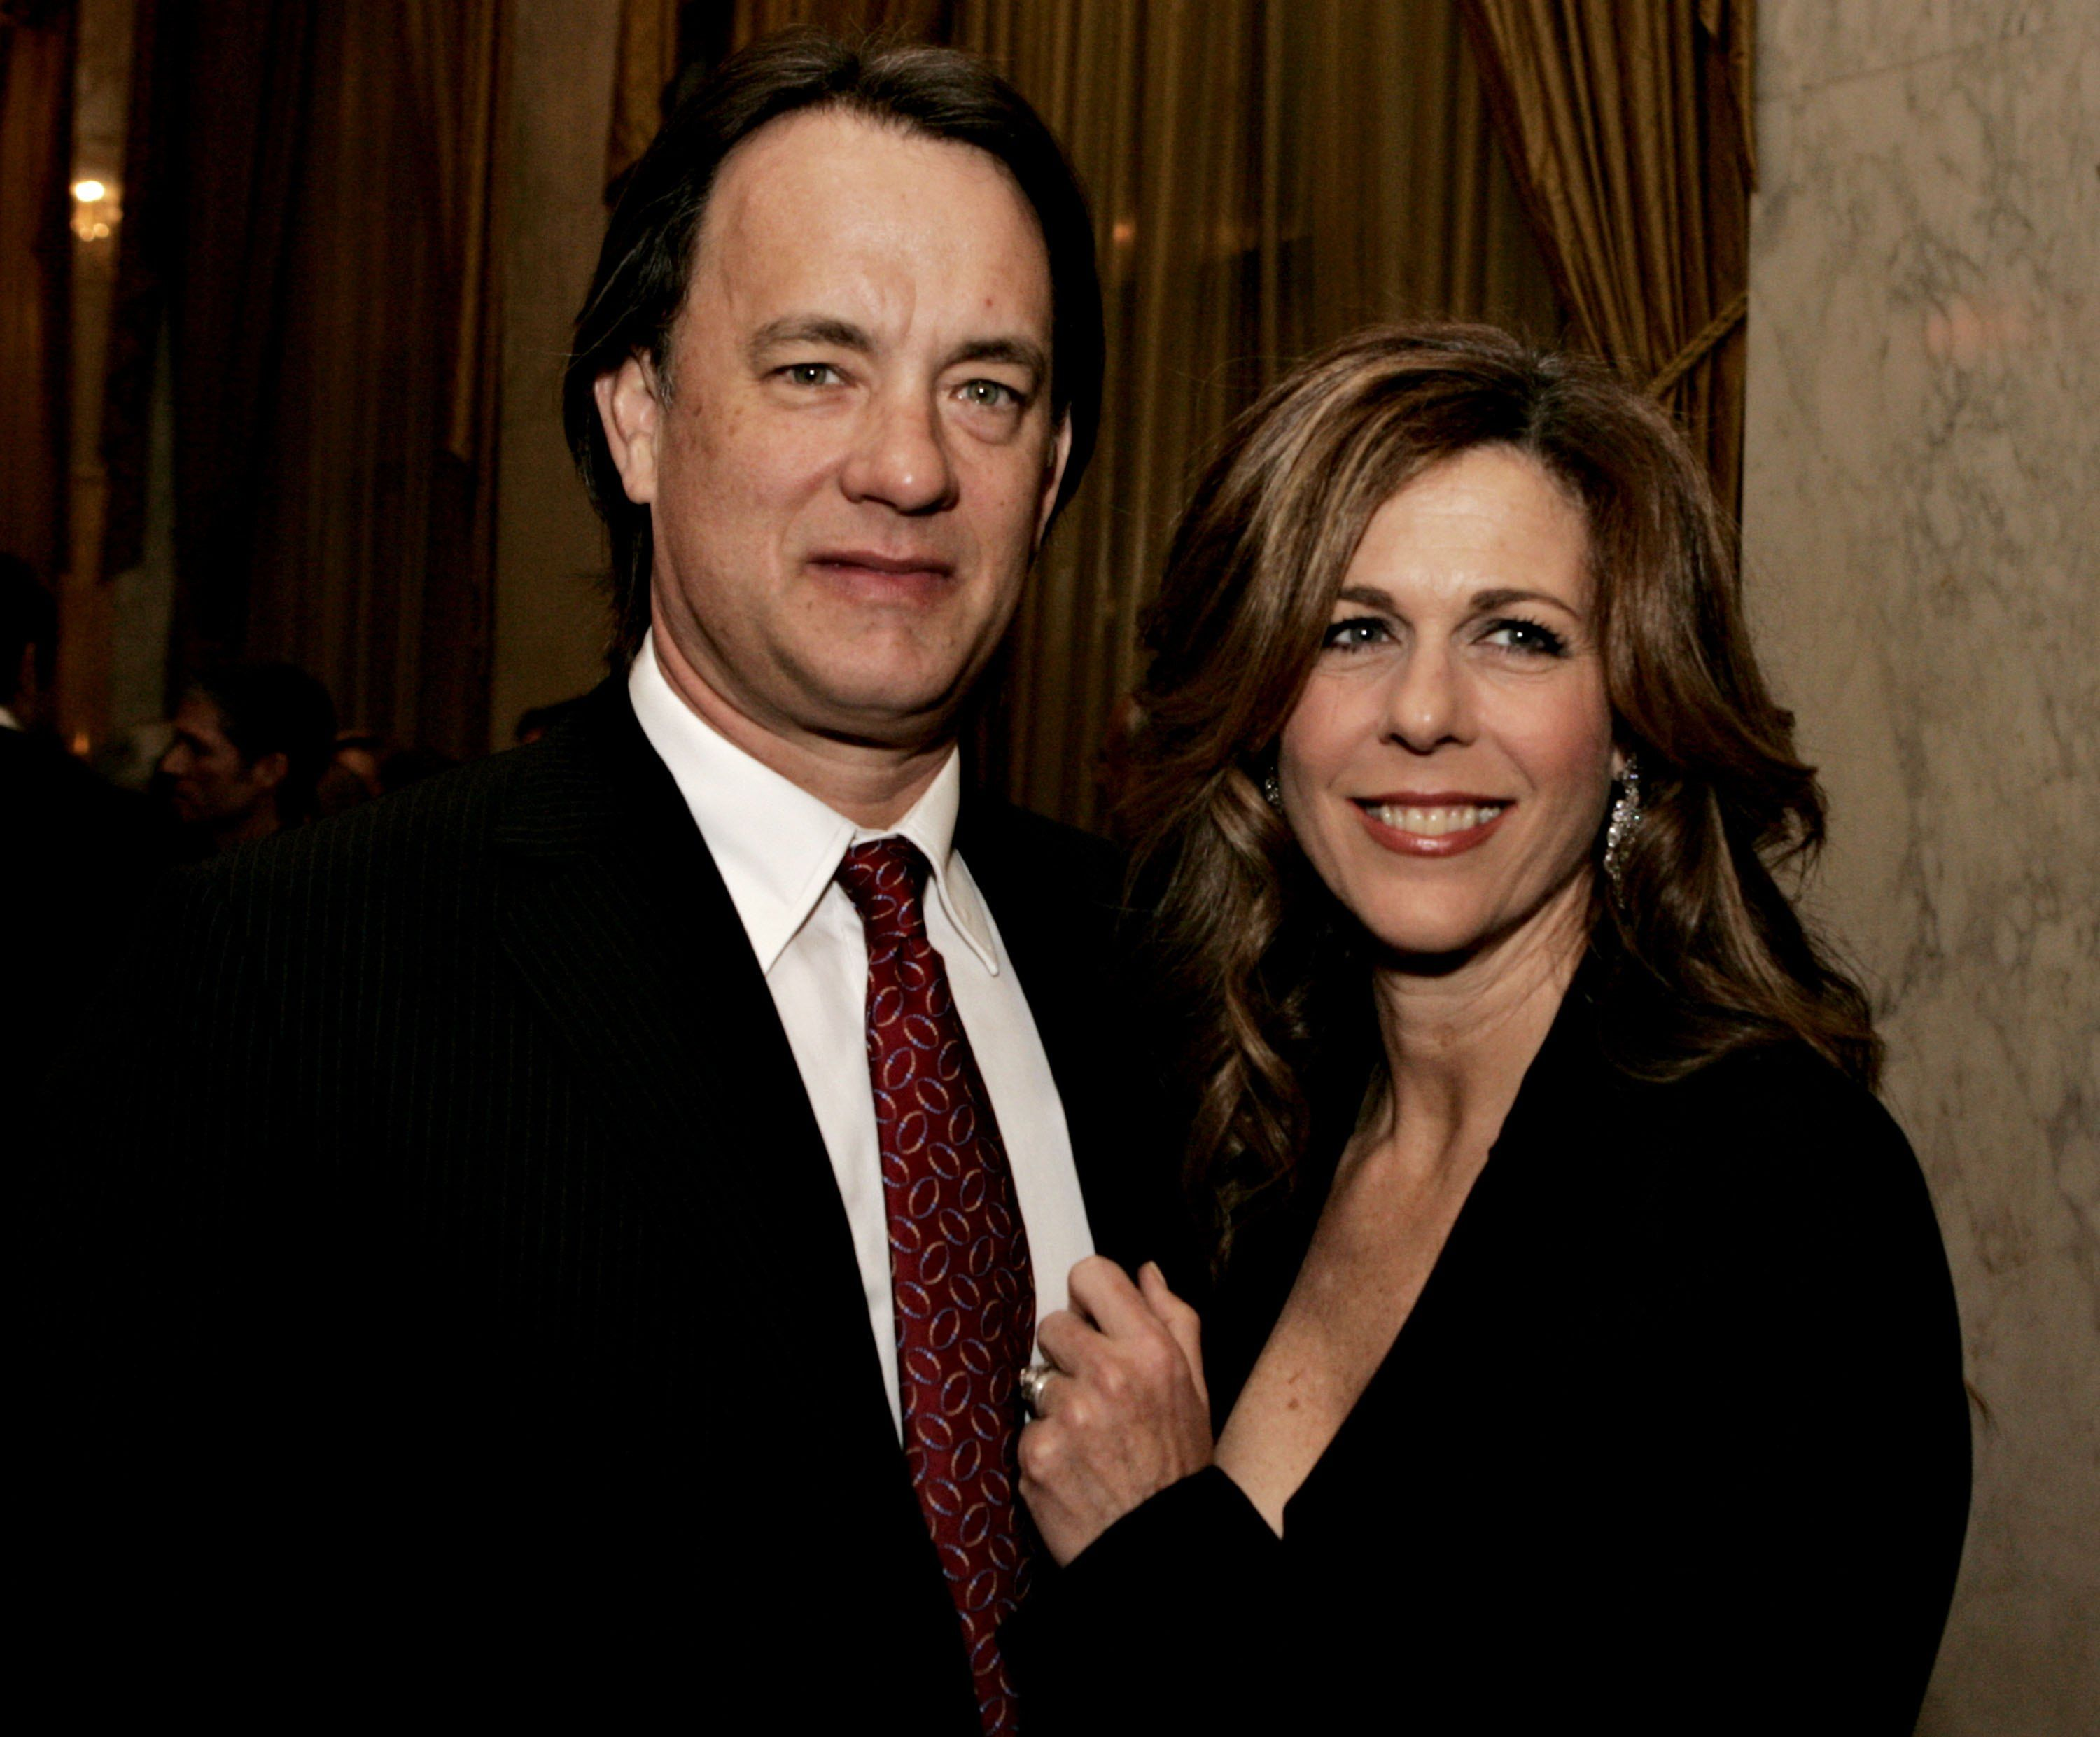 Tom Hanks and Rita Wilson during the EIF's Women's Cancer Research Fund honoring Melissa Etheridge at Saks Fifth Avenue's Unforgettable Evening on March 1, 2006 at the Regent Beverly Wilshire Hotel in Beverly Hills, California.   Source: Getty Images